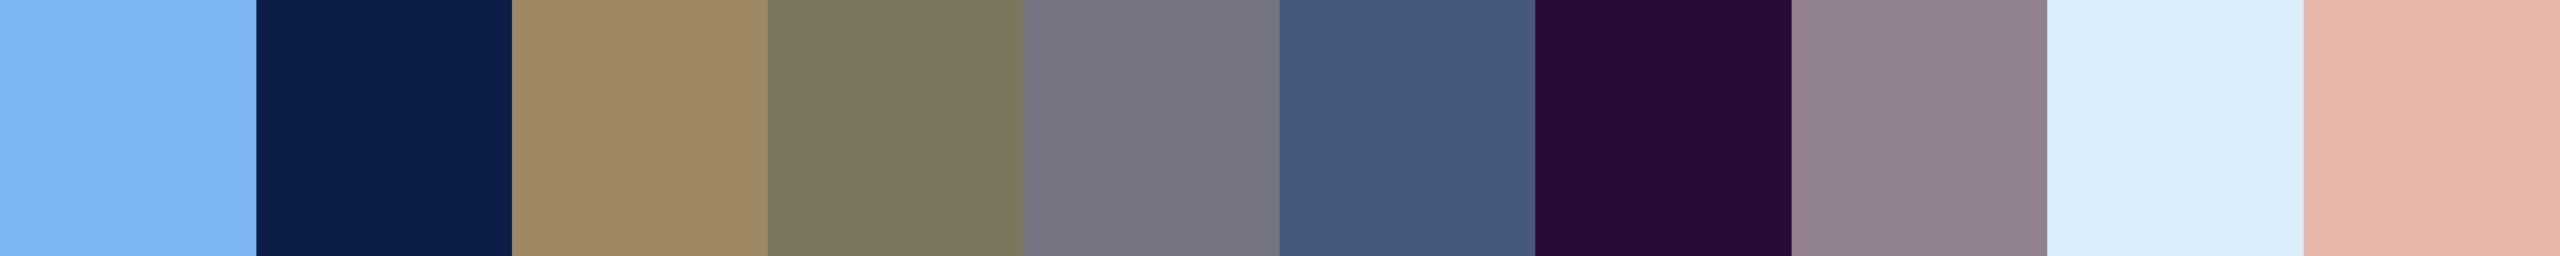 594 Elekteria Color Palette